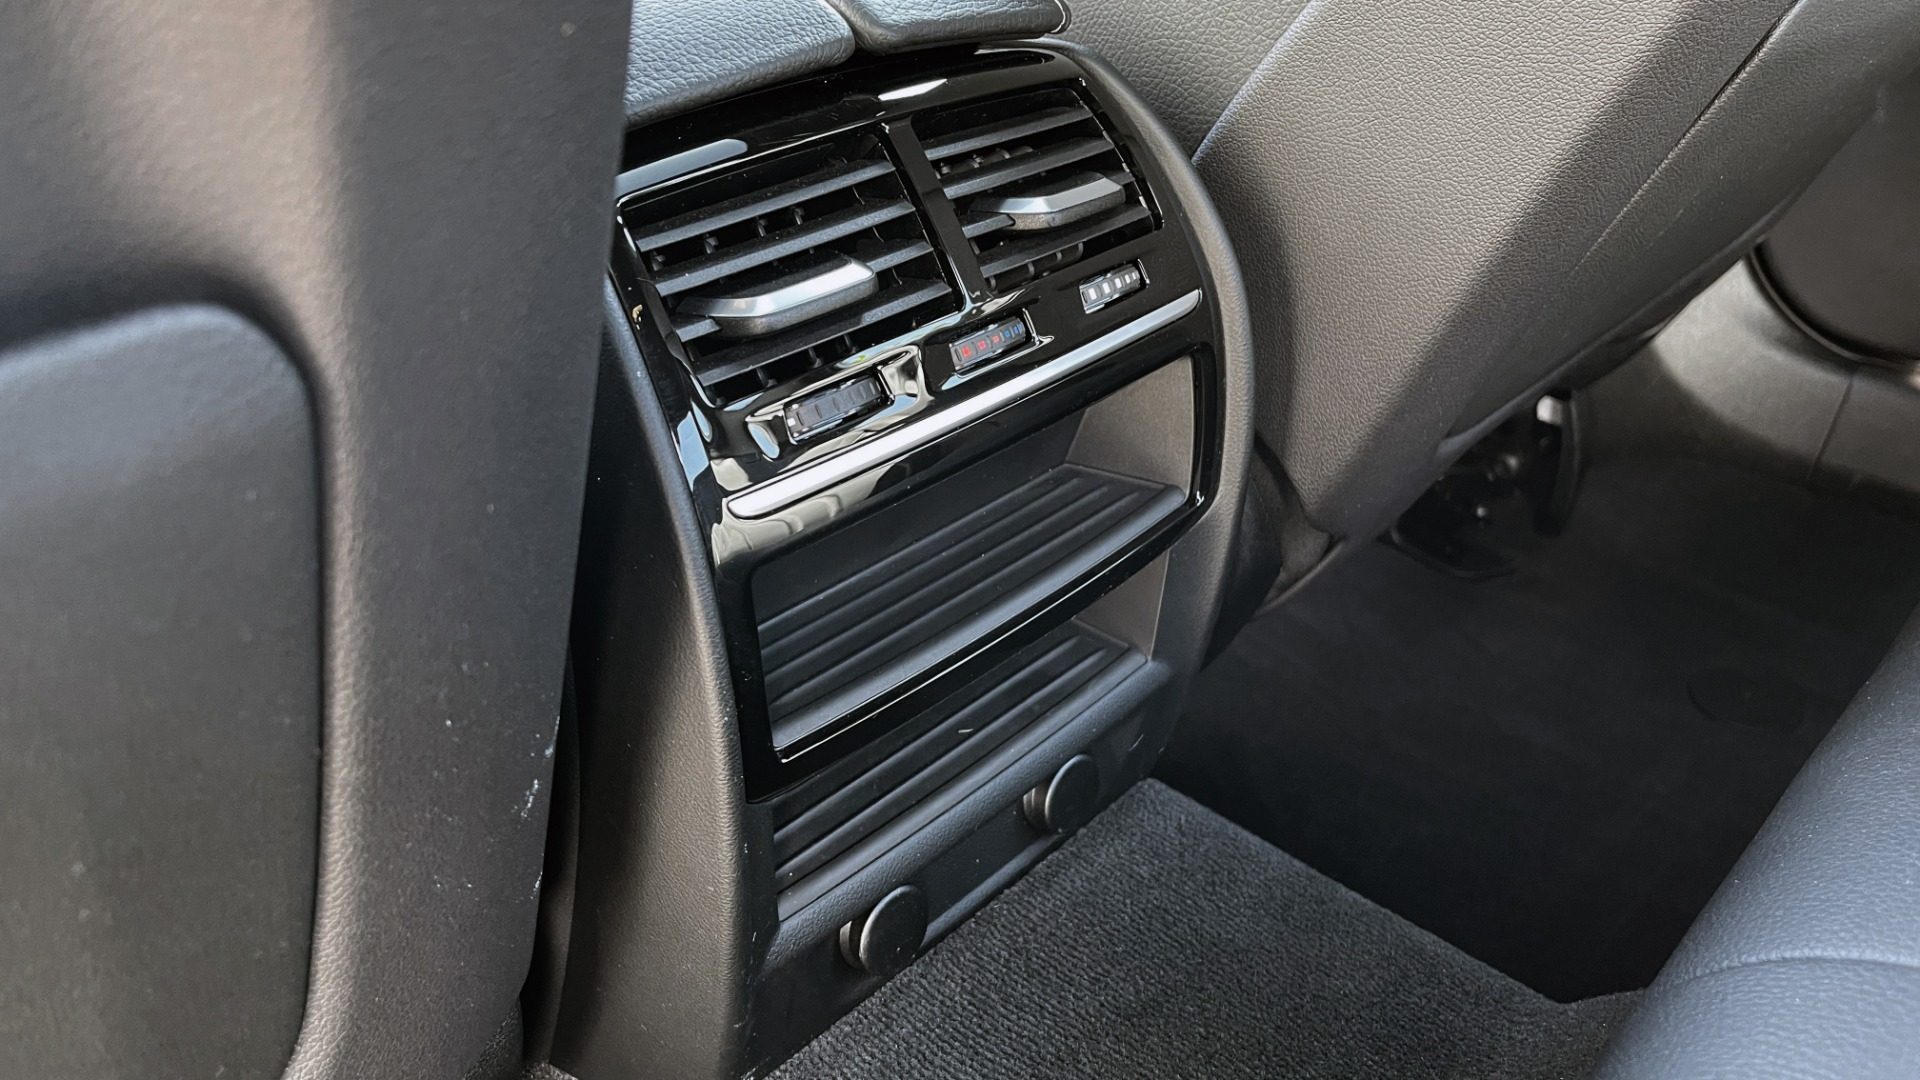 Used 2018 BMW 5 SERIES 540I XDRIVE PREMIUM / NAV / PARK ASST / WIRELESS CHARGING H/K SND for sale $38,395 at Formula Imports in Charlotte NC 28227 65